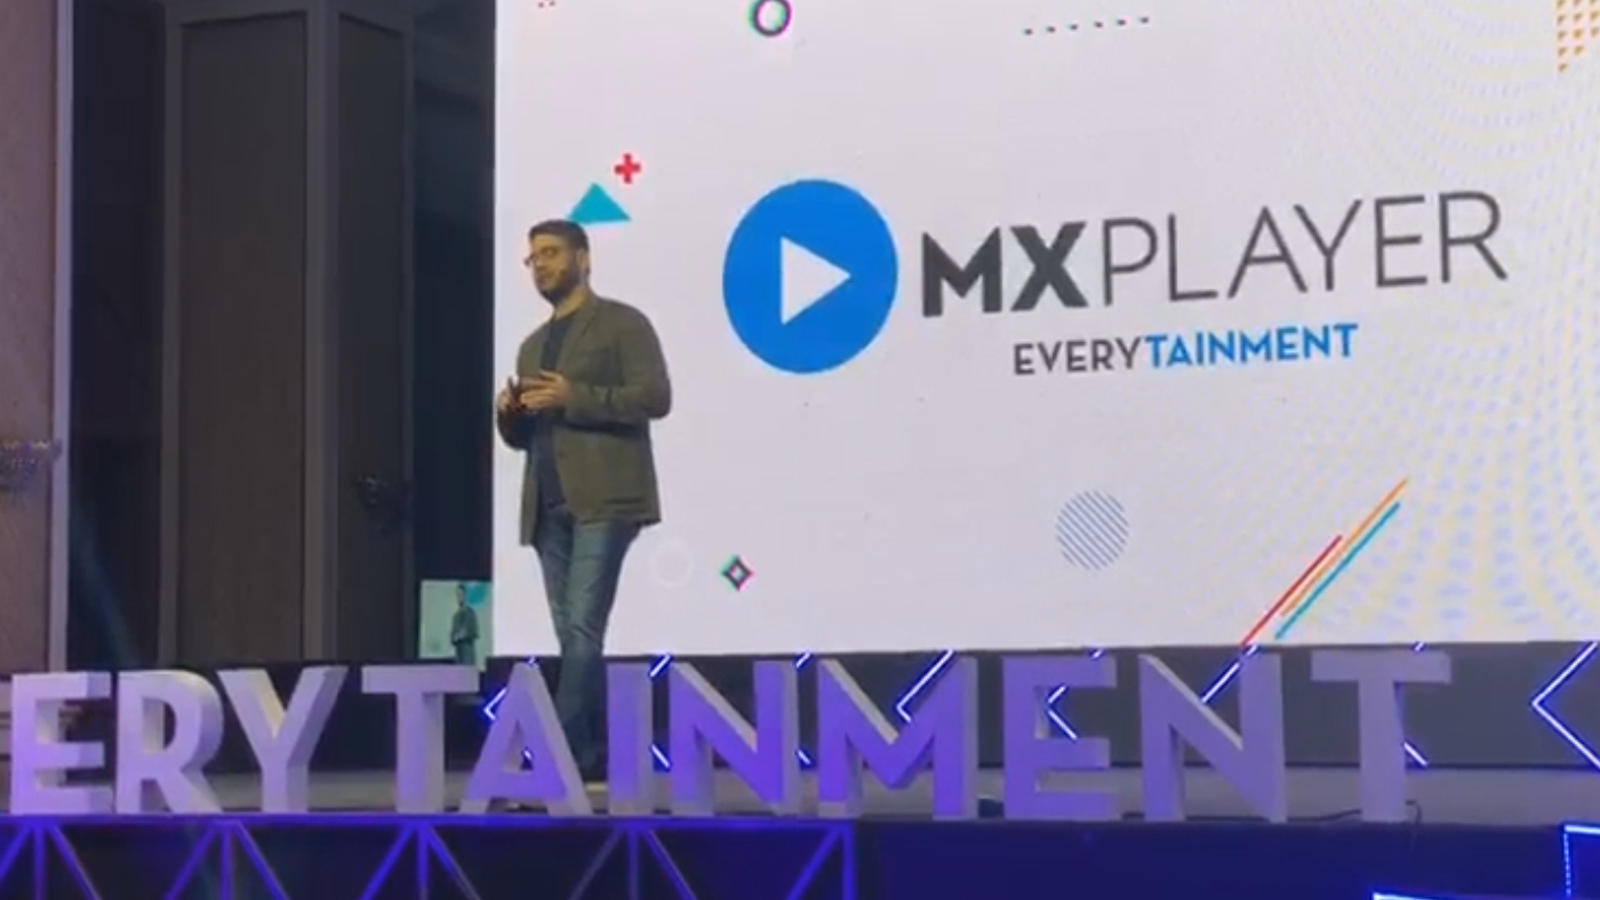 MX Player launches its first 5 MX Original Series in a grand